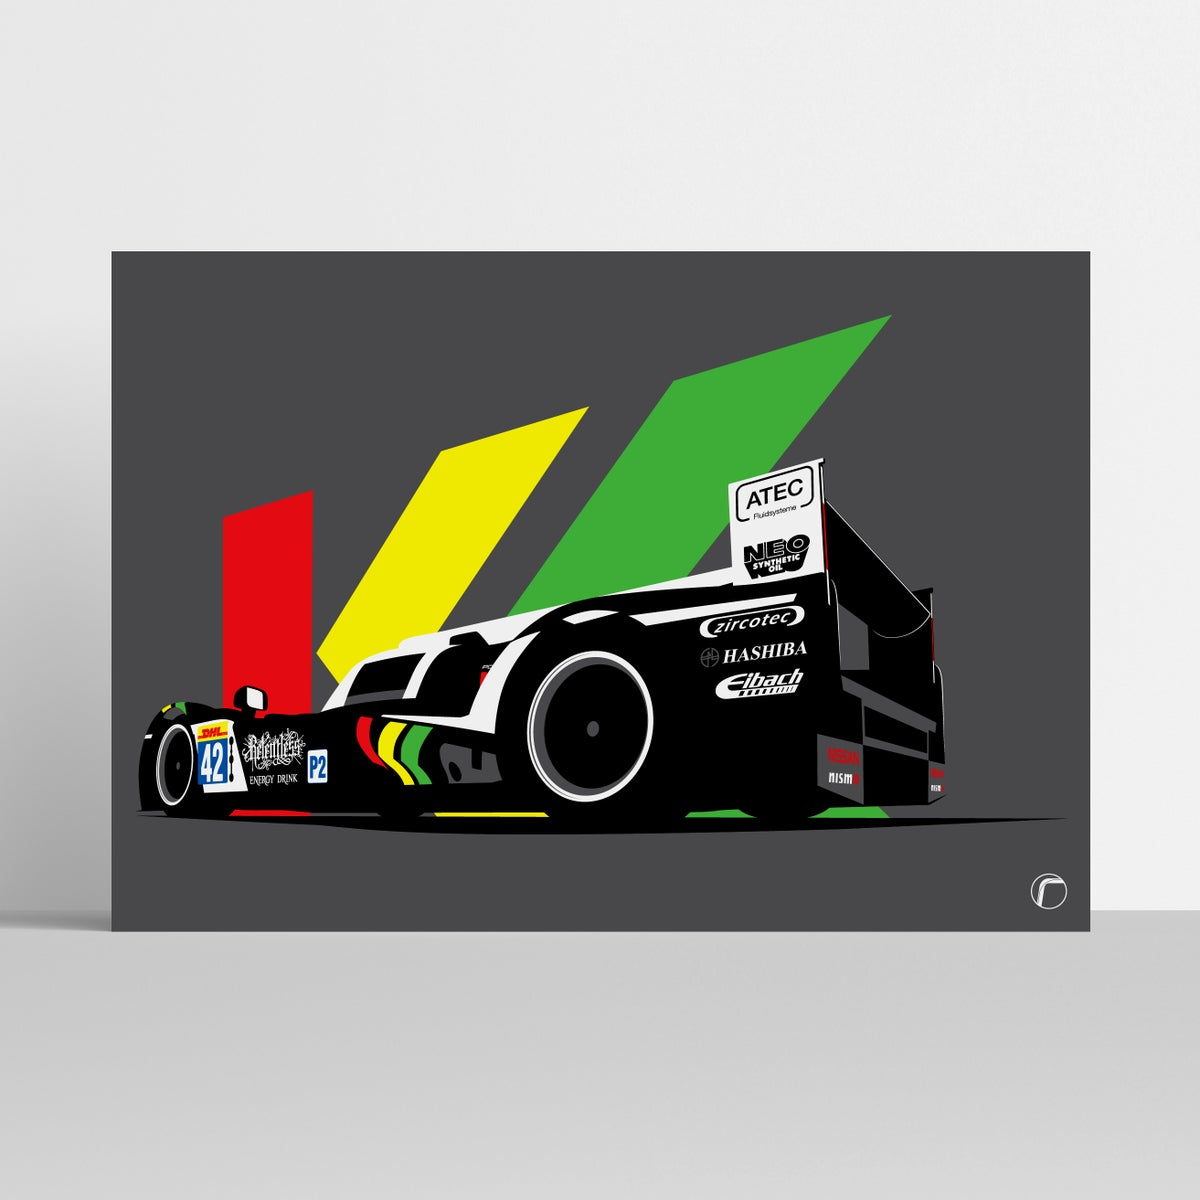 Image of Strakka Racing